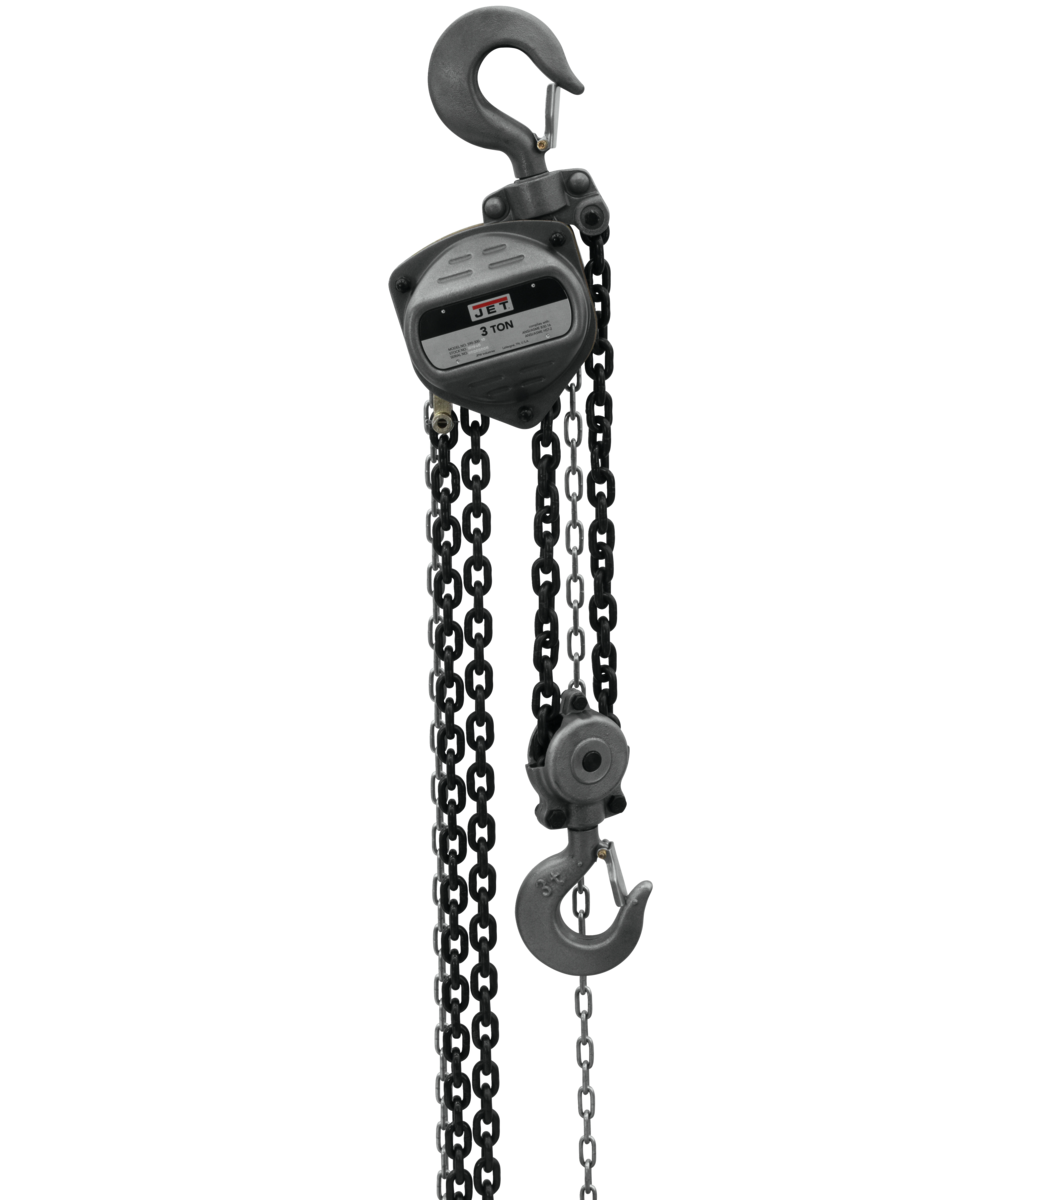 S90-300-30, 3-Ton Hand Chain Hoist With 30' Lift